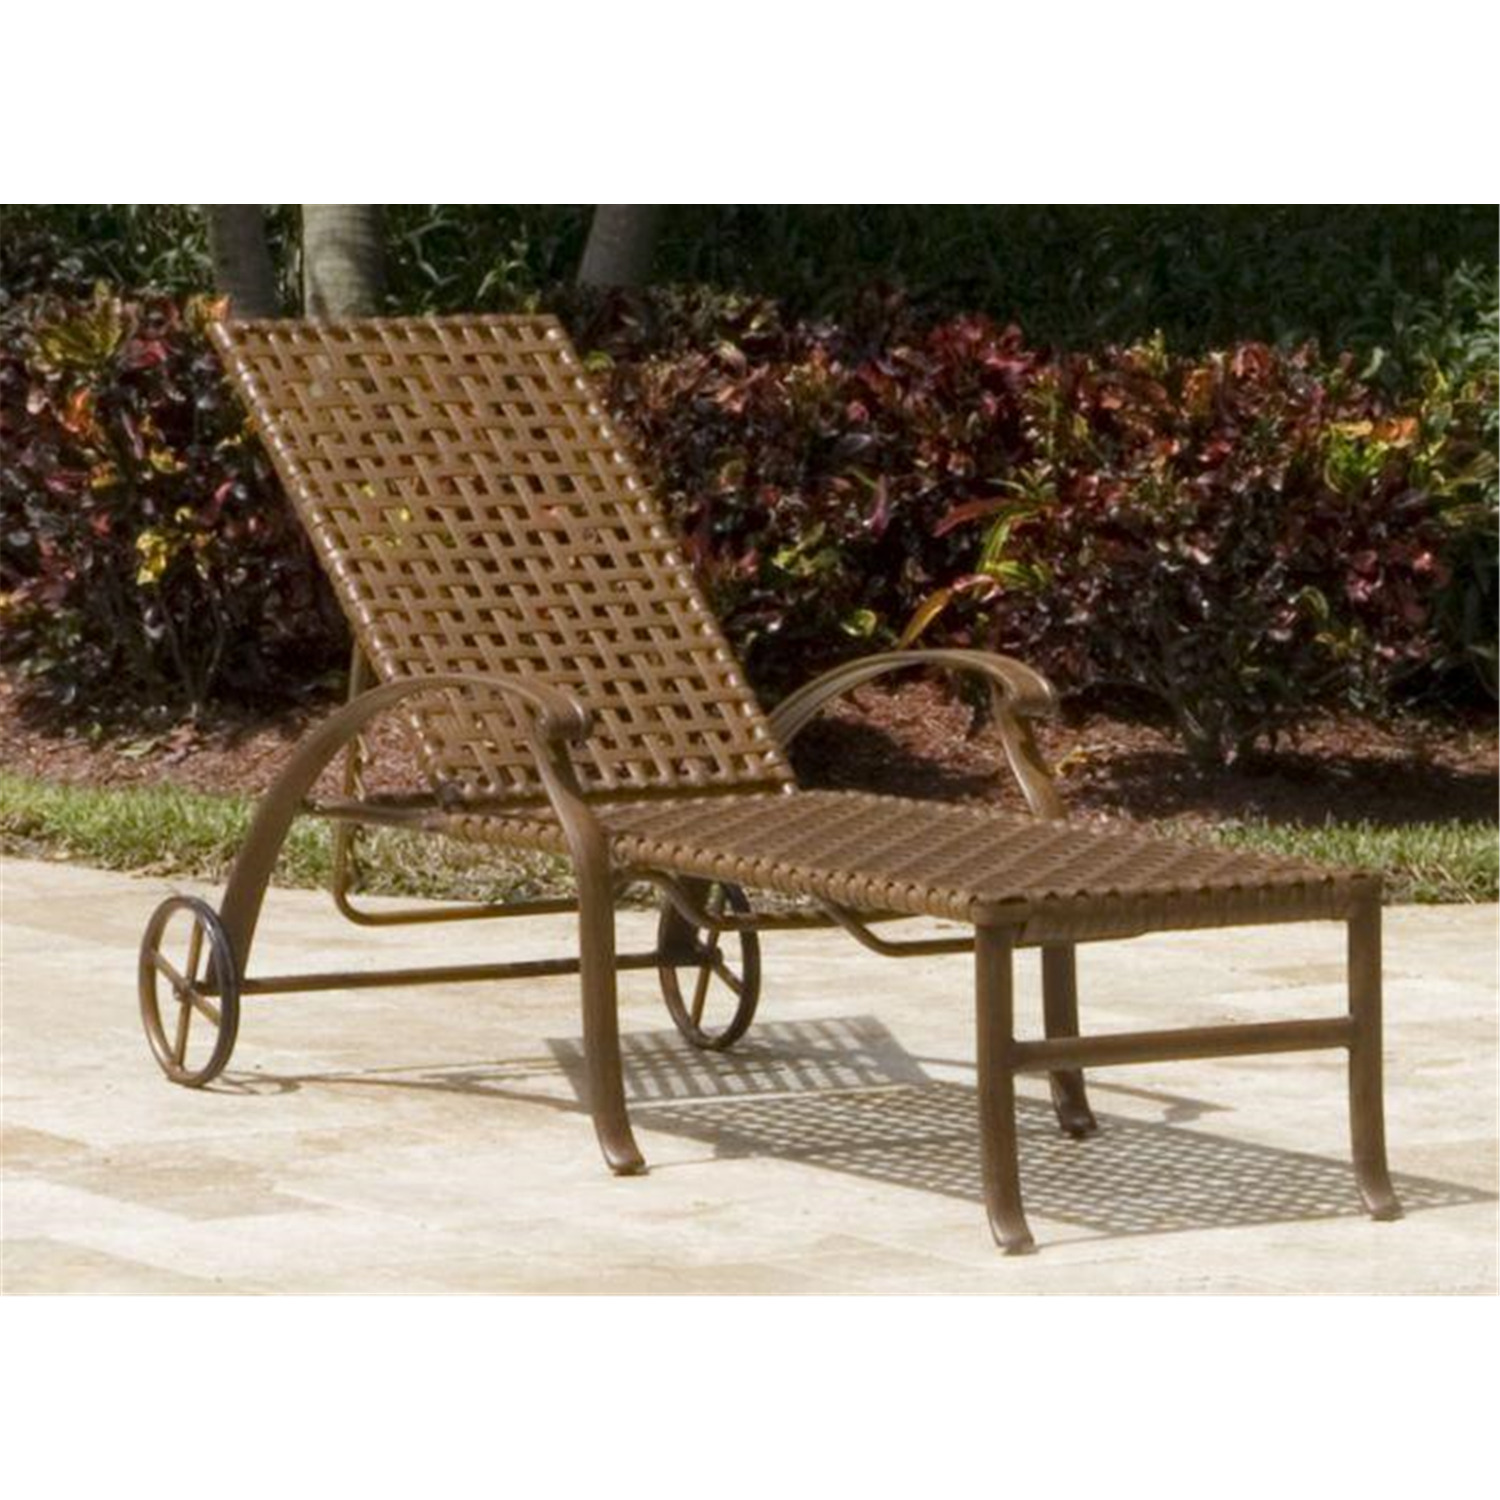 Patio Chaise Lounge With Wheels Ojcommerce